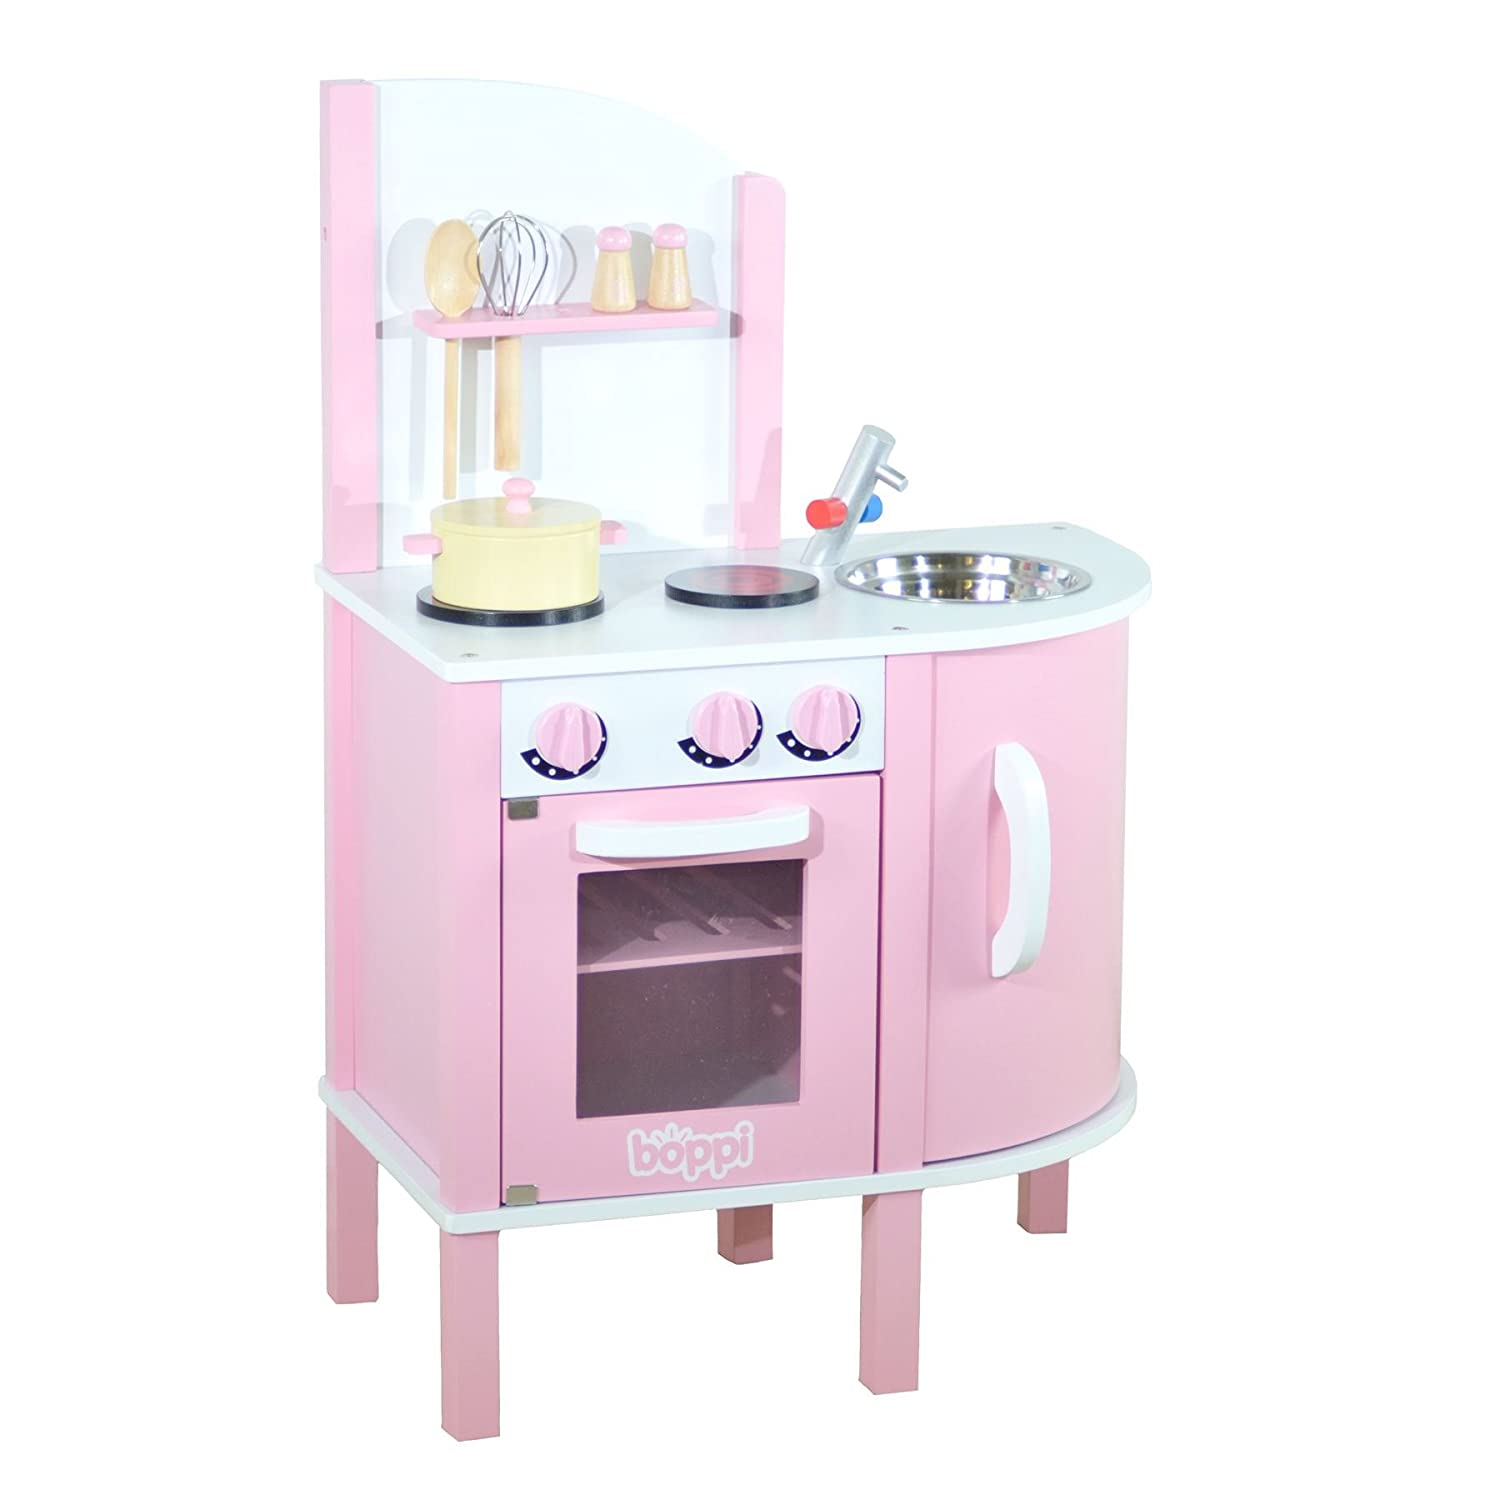 boppi® - Wooden Toy Kitchen Playset with Accessories - 5 Piece ...